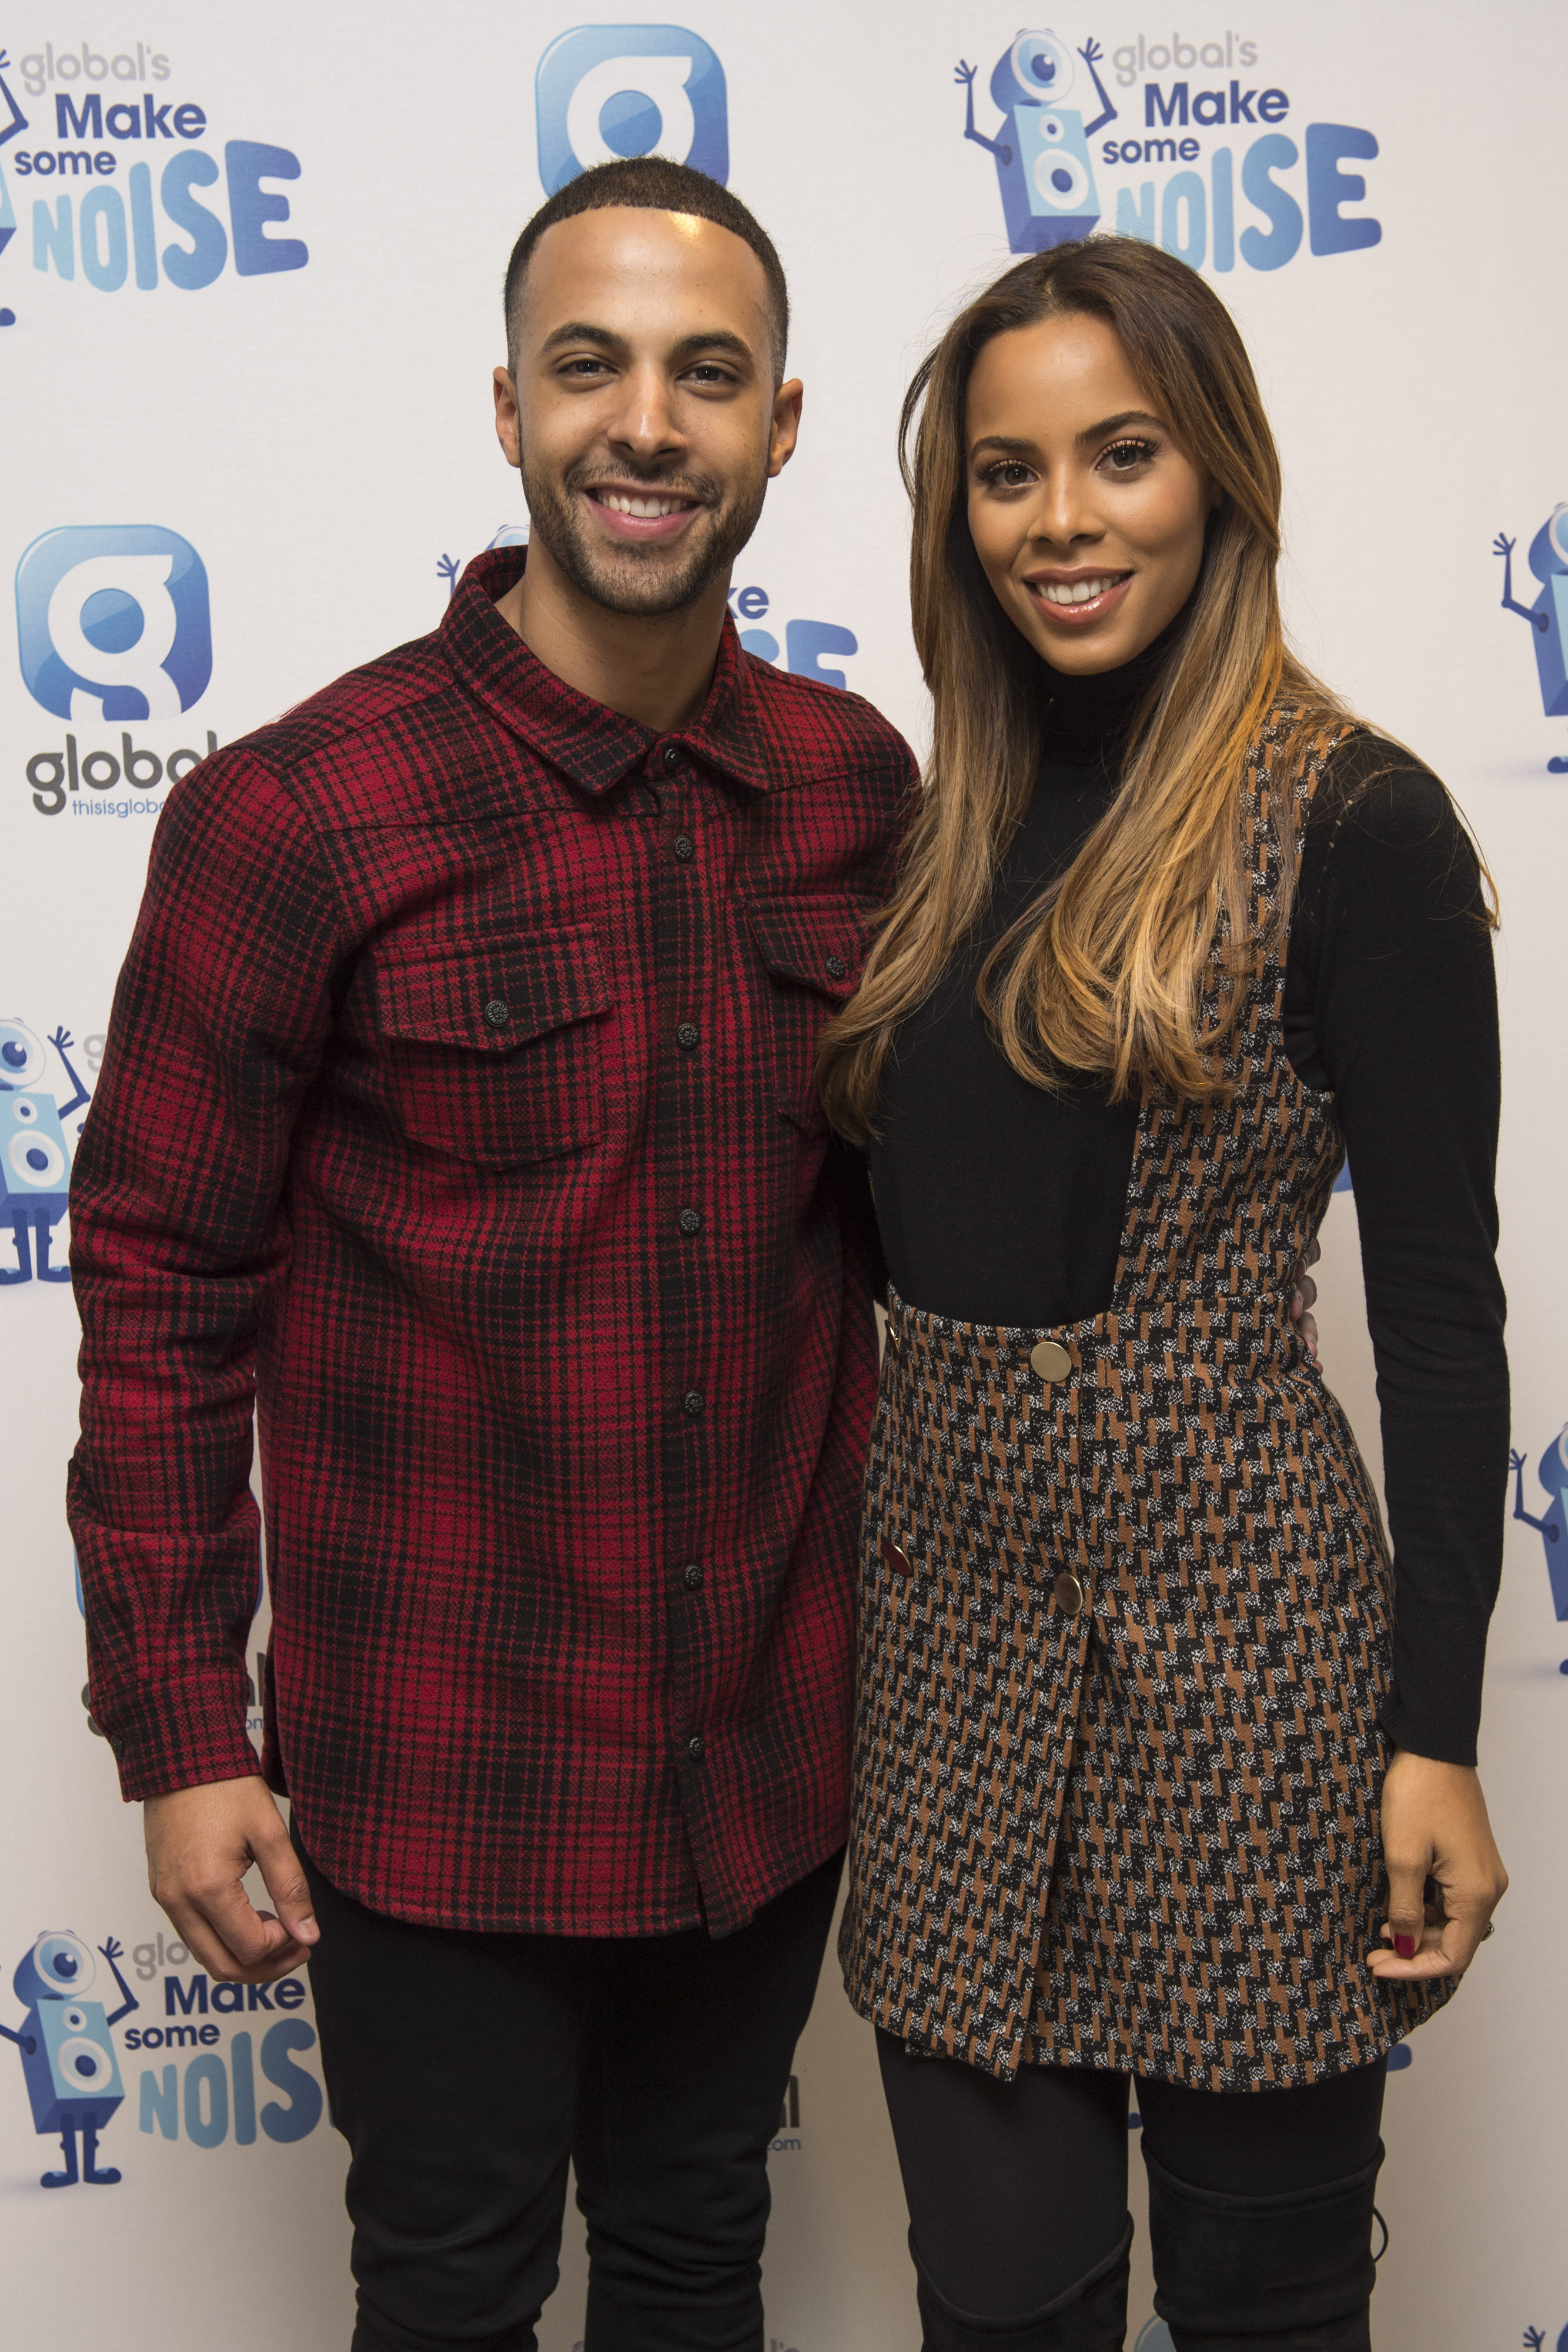 Marvin and Rochelle Humes taking part in Gobal's Make Some Noise, at the Global radio studios in central London. Global's Make Some Noise is a national charity that raises money to help disadvantaged youngsters and gives a voice to small projects and charities across the UK that struggle to raise awareness.